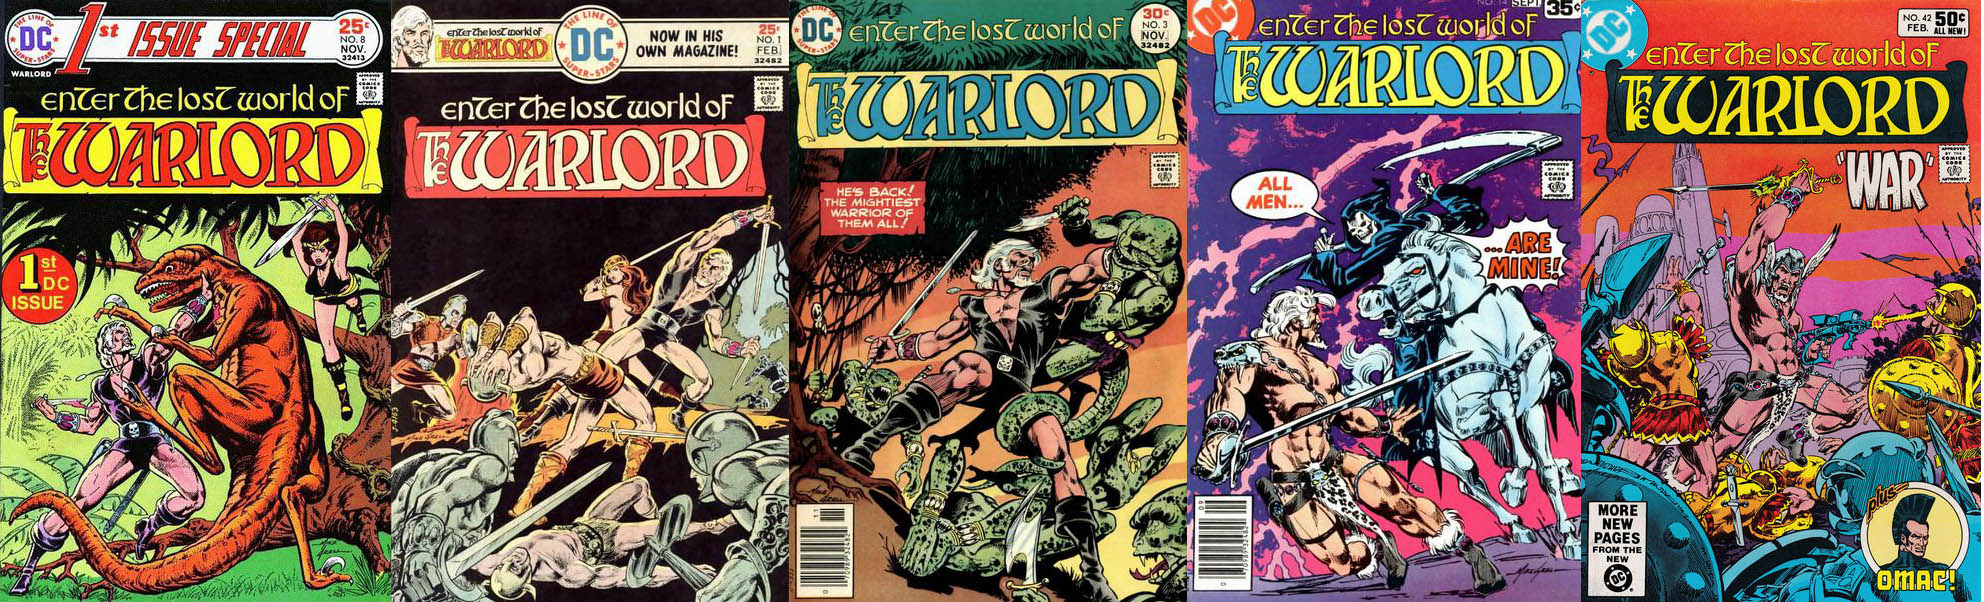 Sword & Sorcery at DC: The 1970s